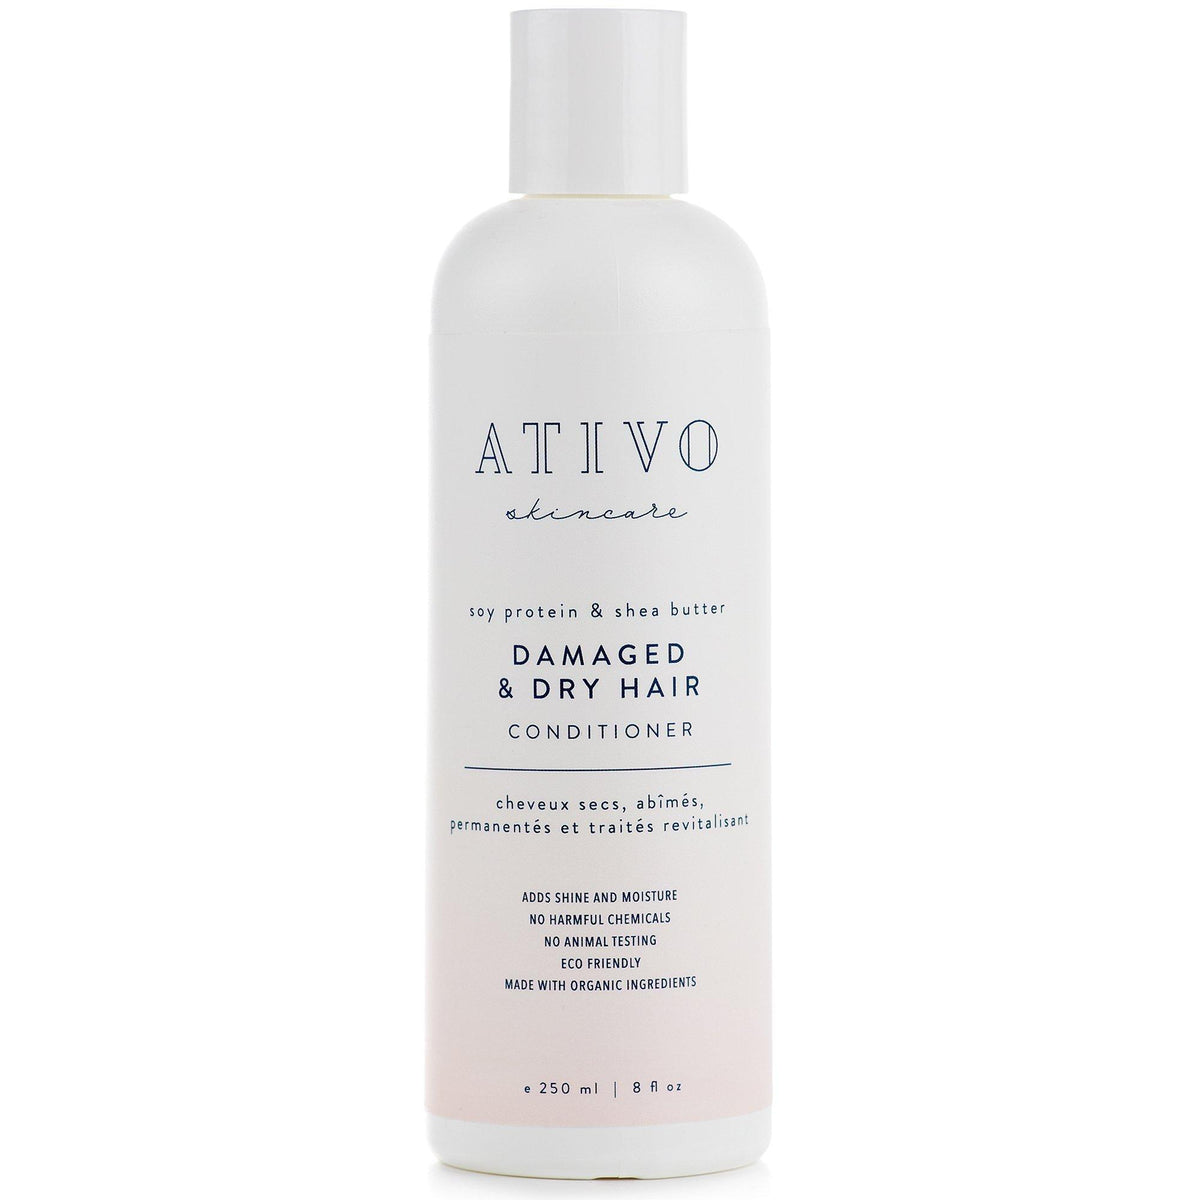 Damaged & Dry Hair Conditioner - Ativo Skincare